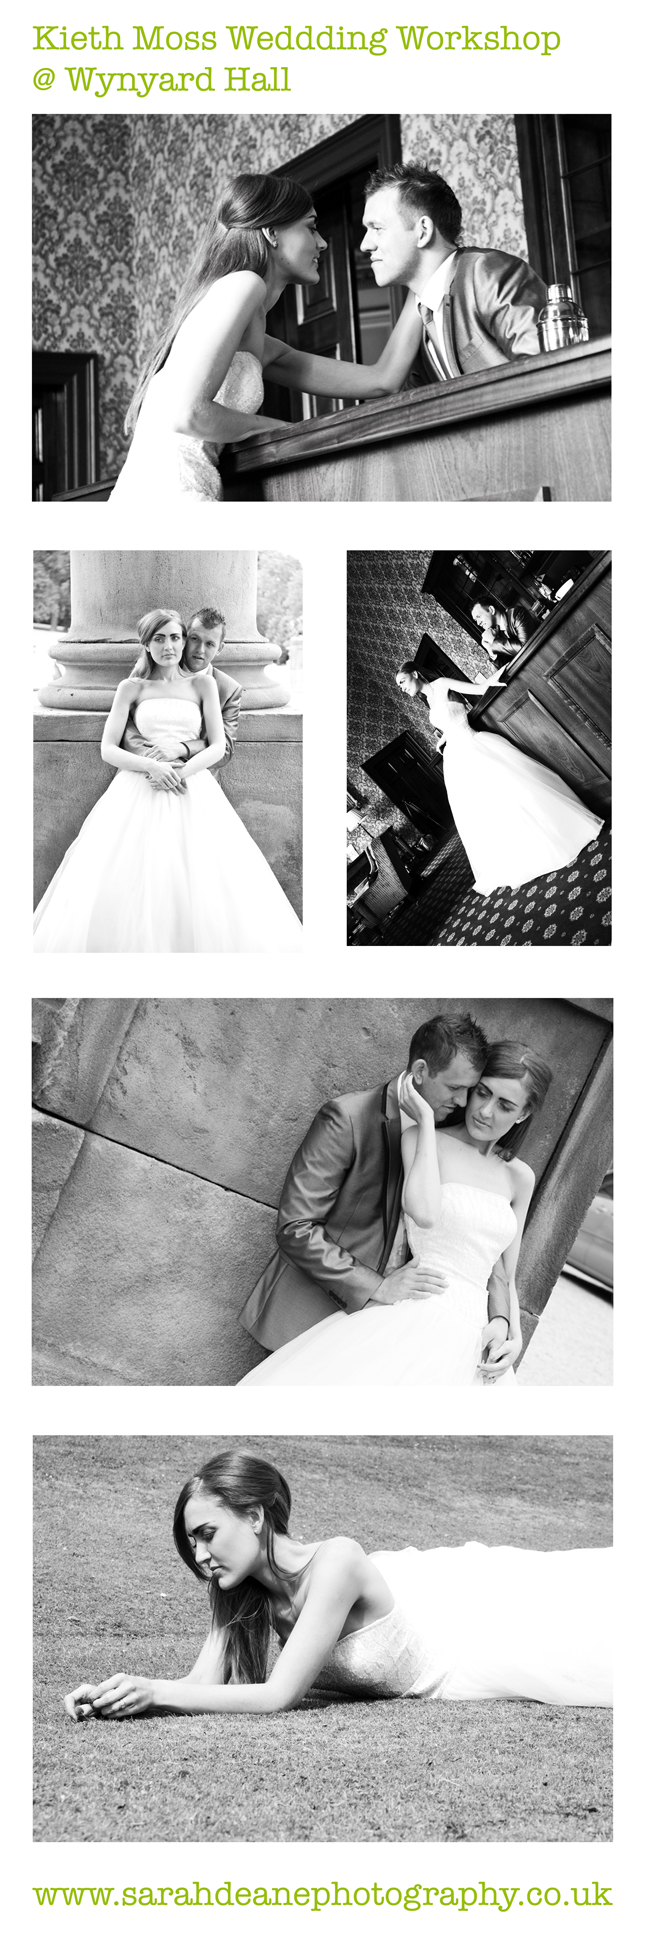 Keith Moss Wedding Workshop